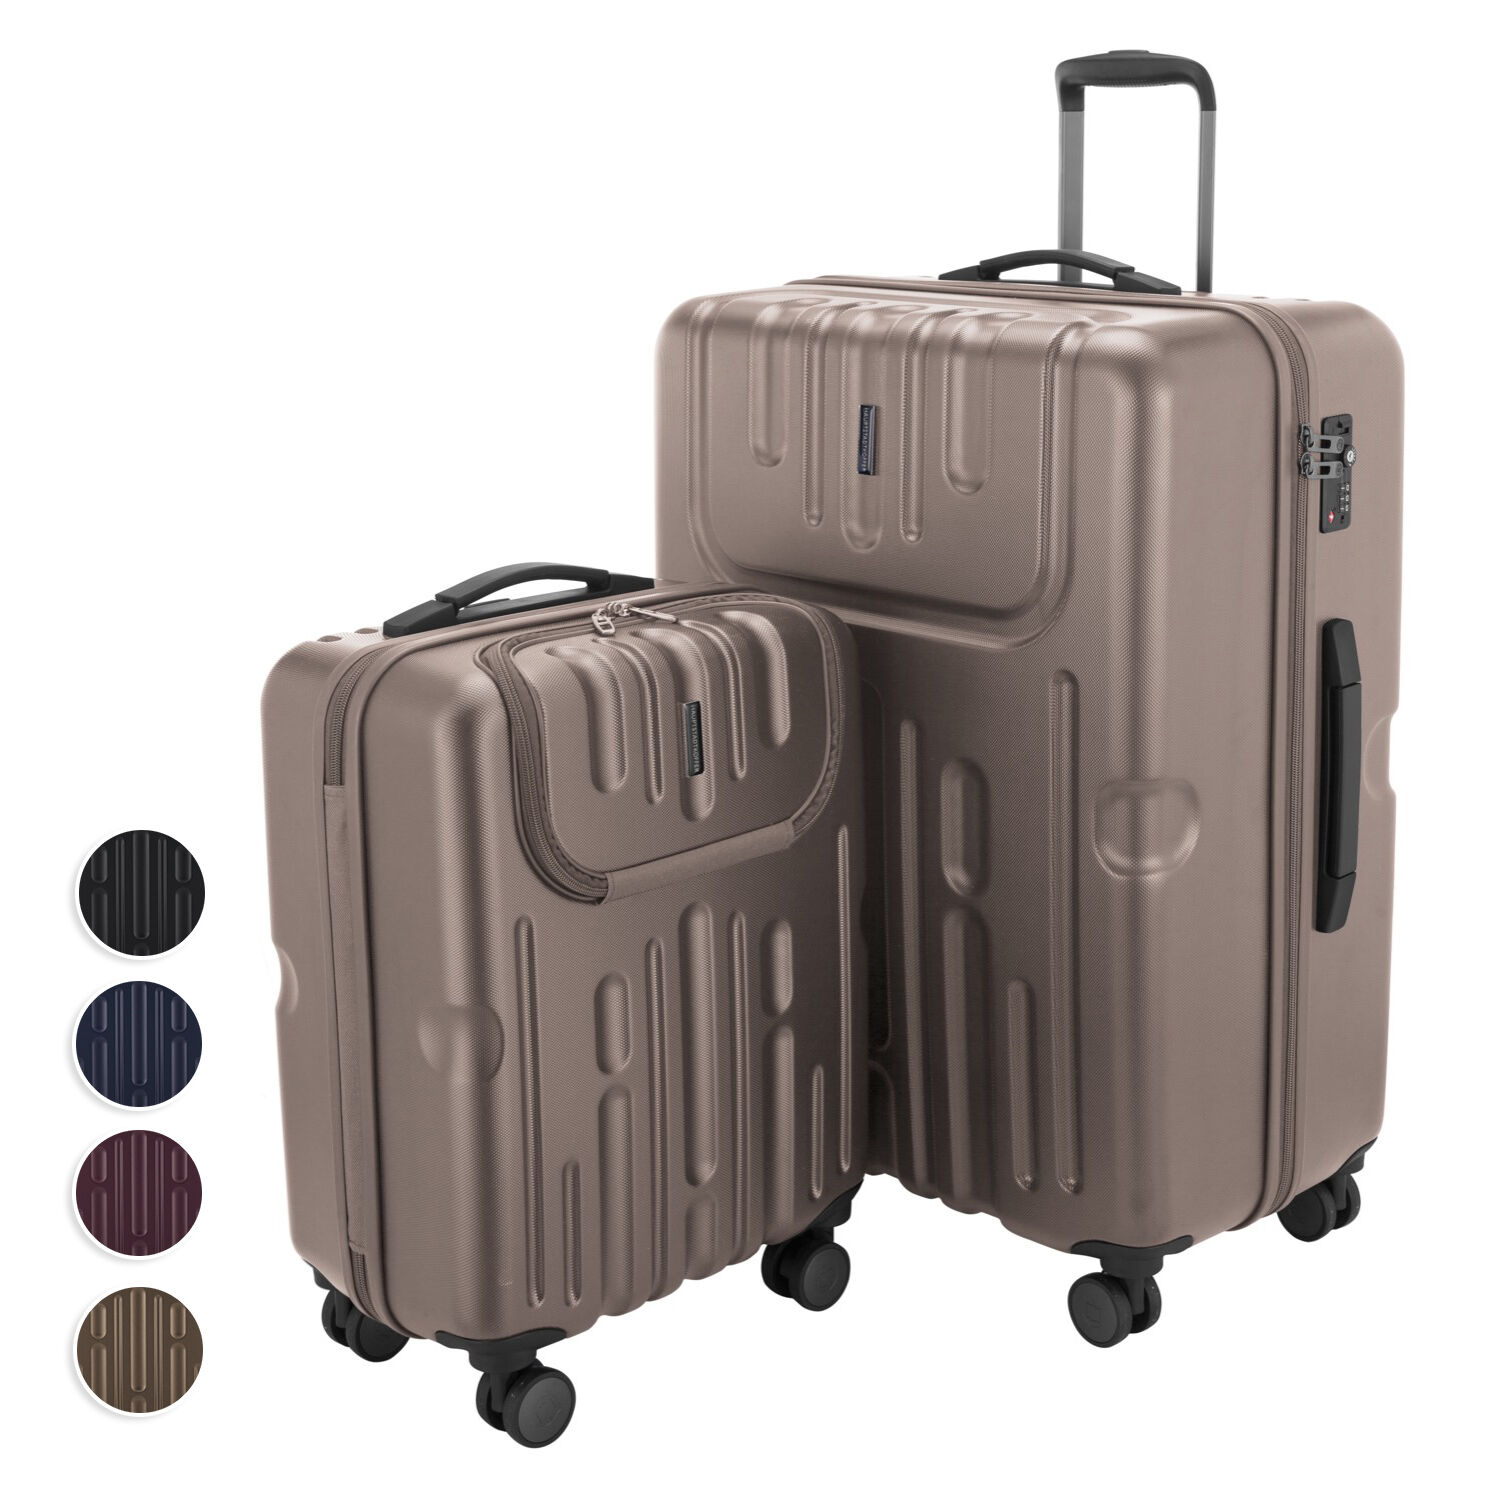 M. havel trolley lot de 2 hardside sacagerie valise trolley s & l